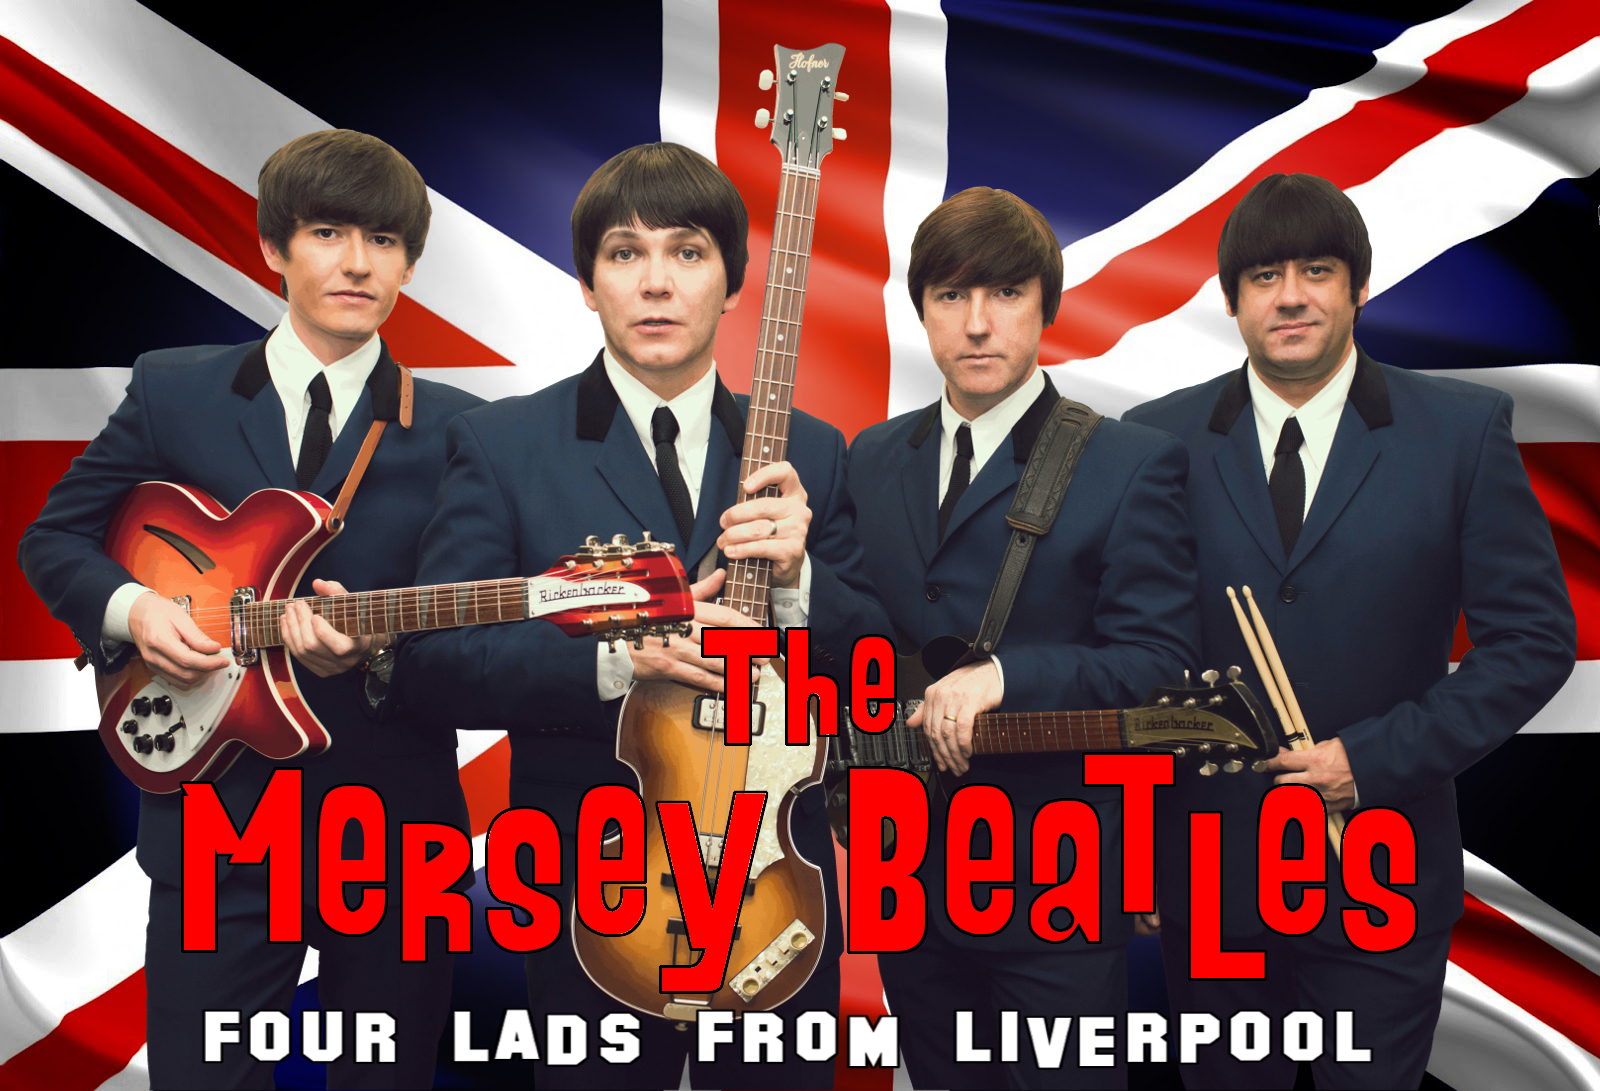 Lightning Productions Presents The Mersey Beatles Four Lads From Liverpool